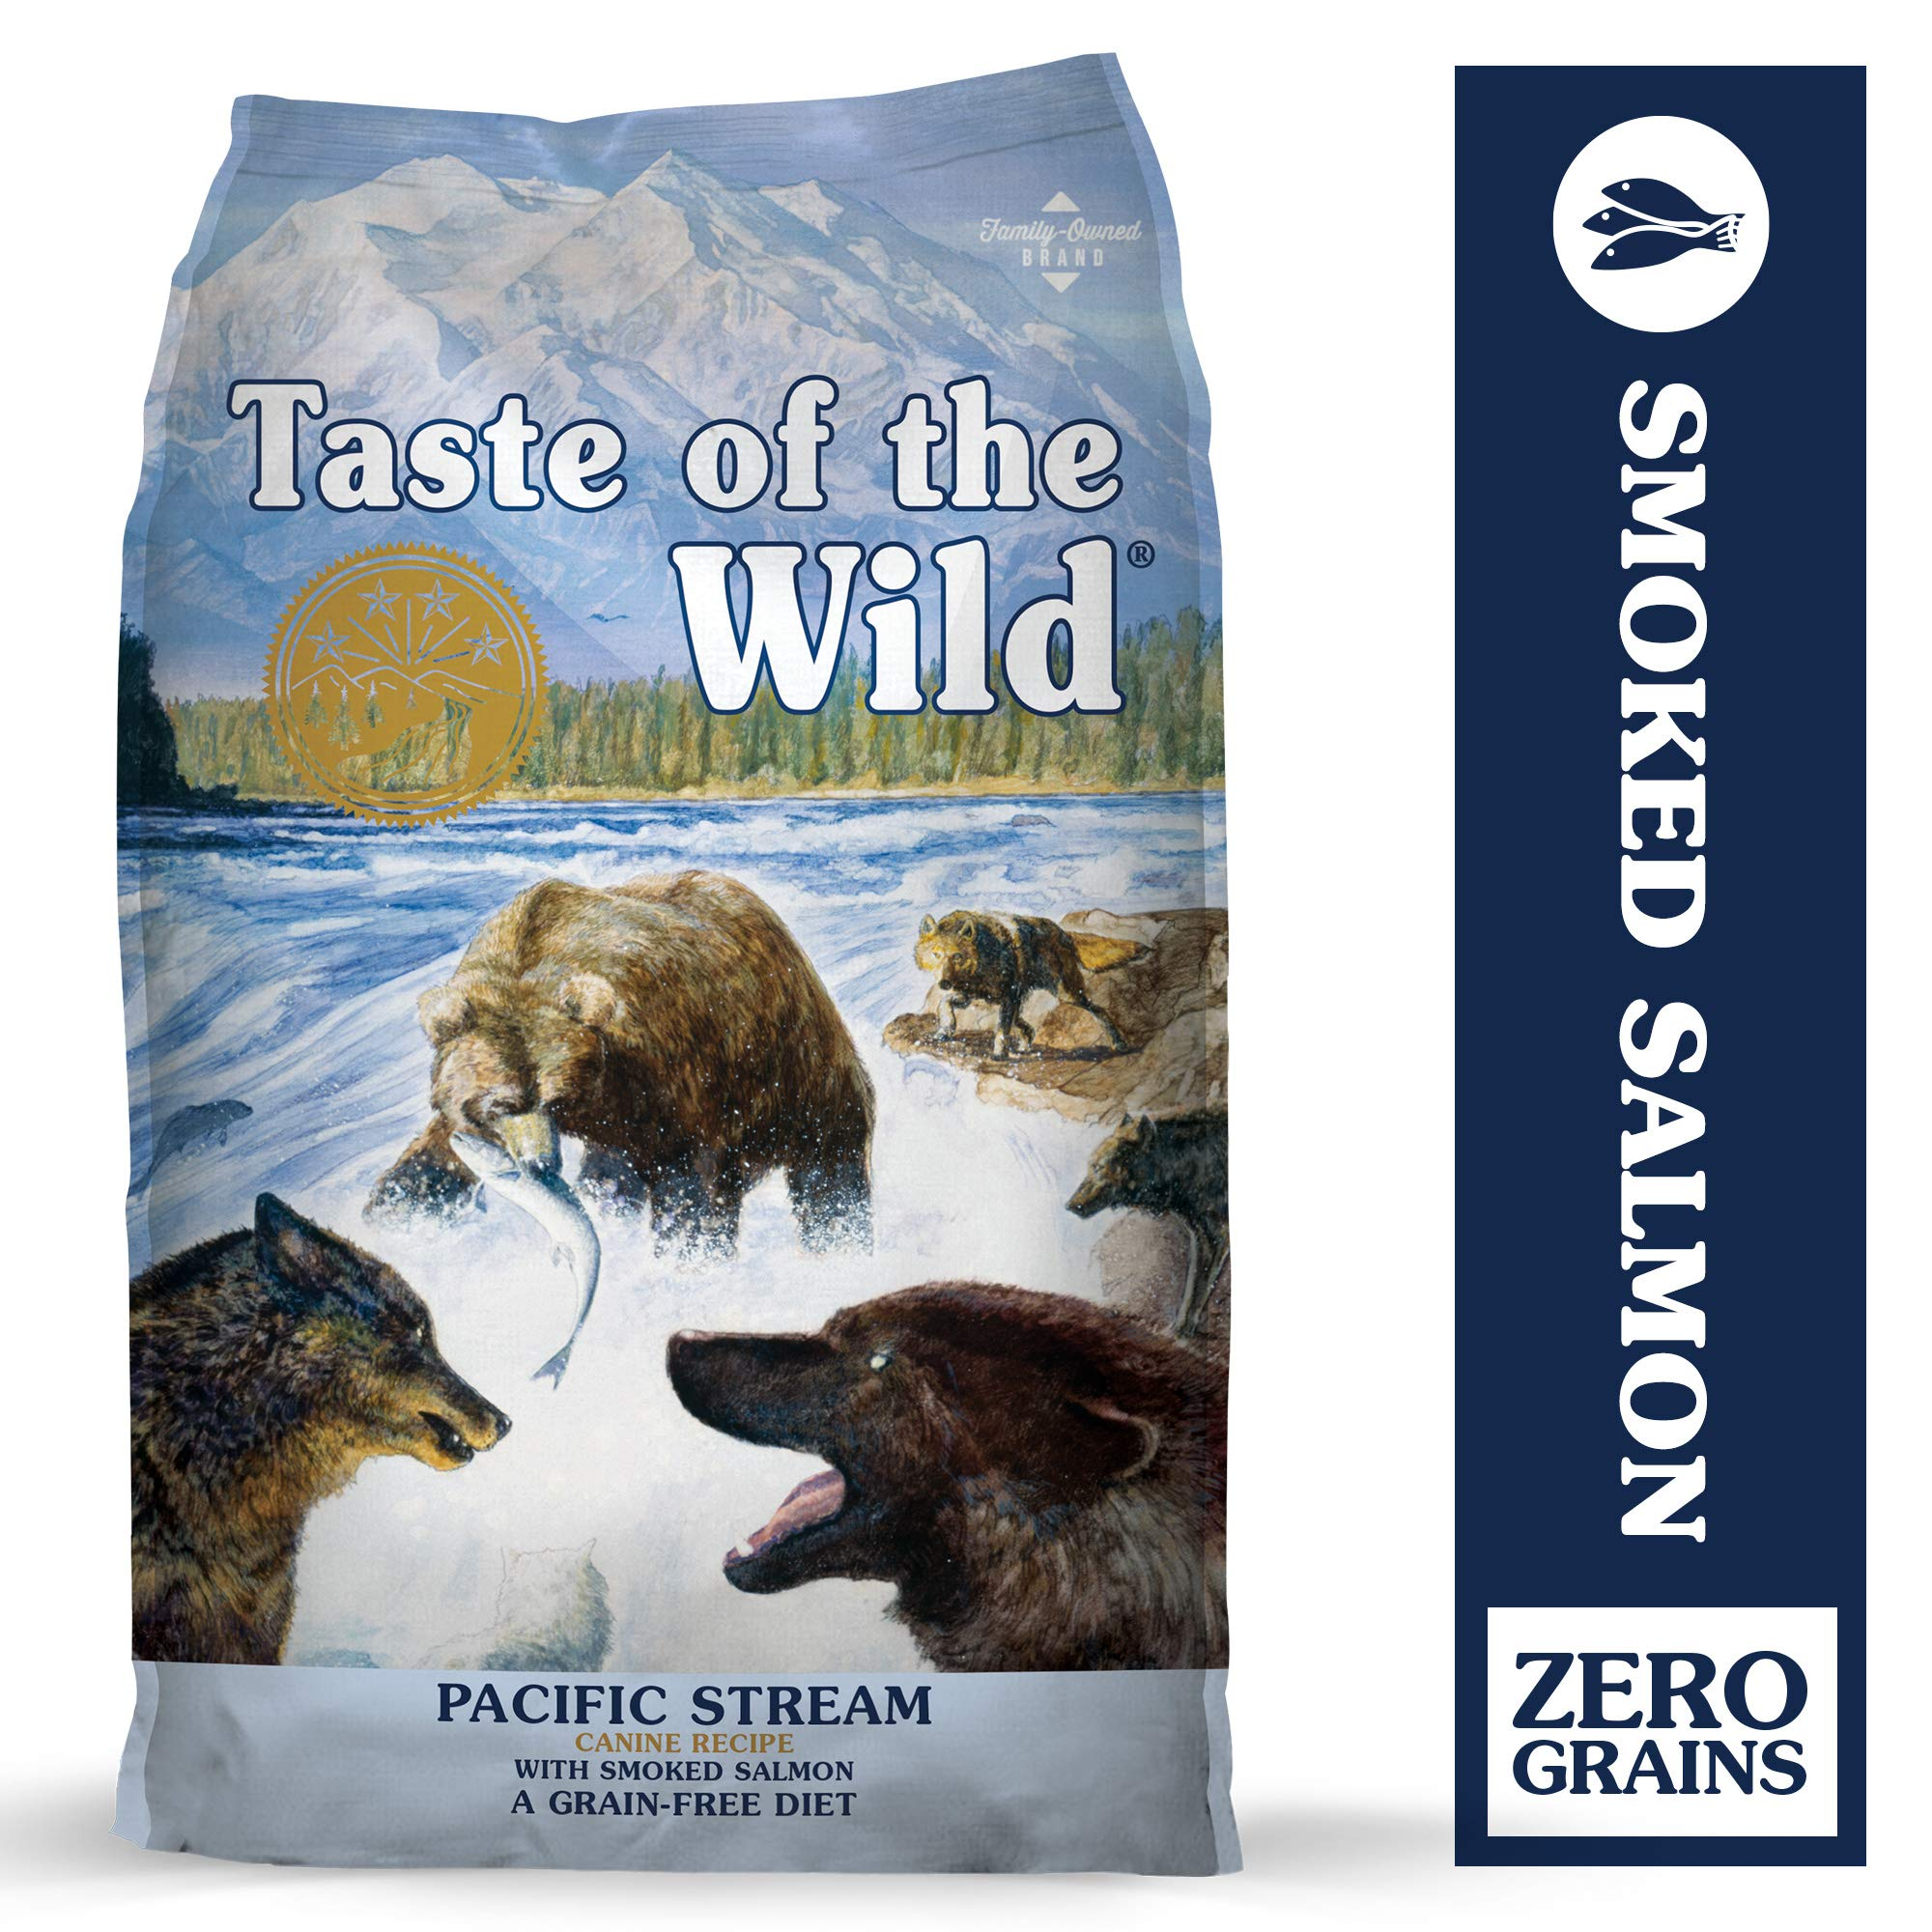 Taste of the Wild Pacific Stream Grain-Free Dry Dog Food with Smoked Salmon 28lb by Taste of the Wild